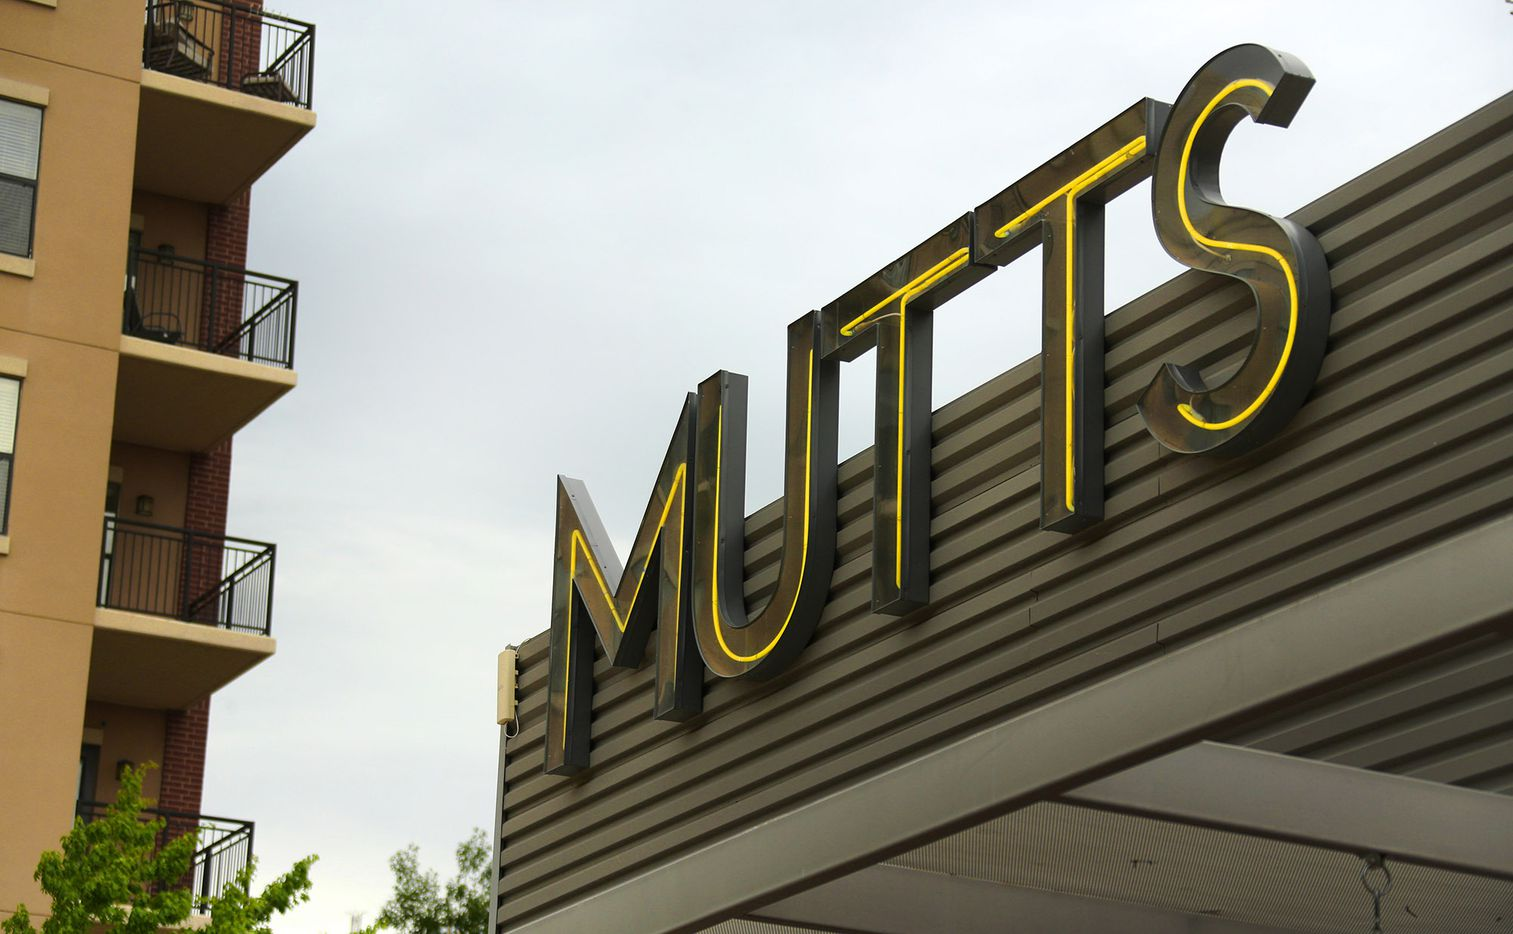 The sign at Mutts Canine Cantina in Uptown, just outside of downtown Dallas, photographed on Saturday, April 1, 2017.